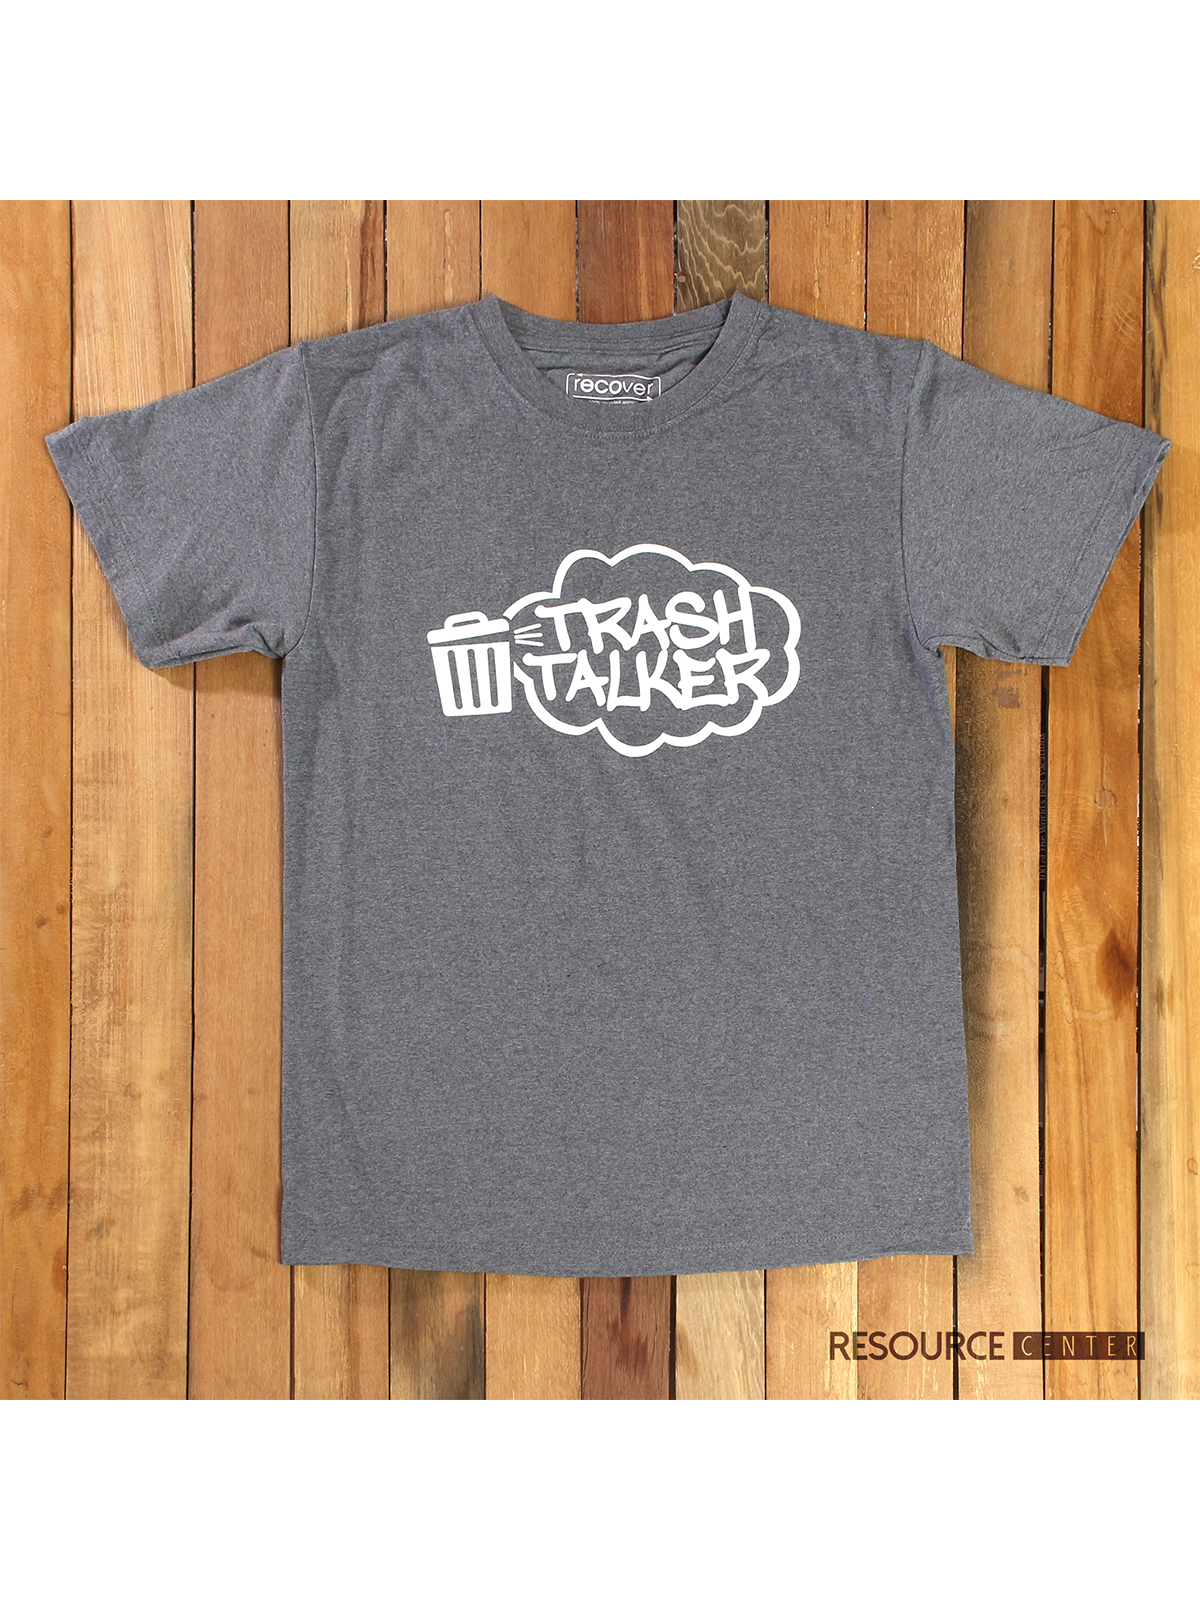 SUSTAINABLE T-SHIRT - SMALL - DARK GREY - TRASH TALKER